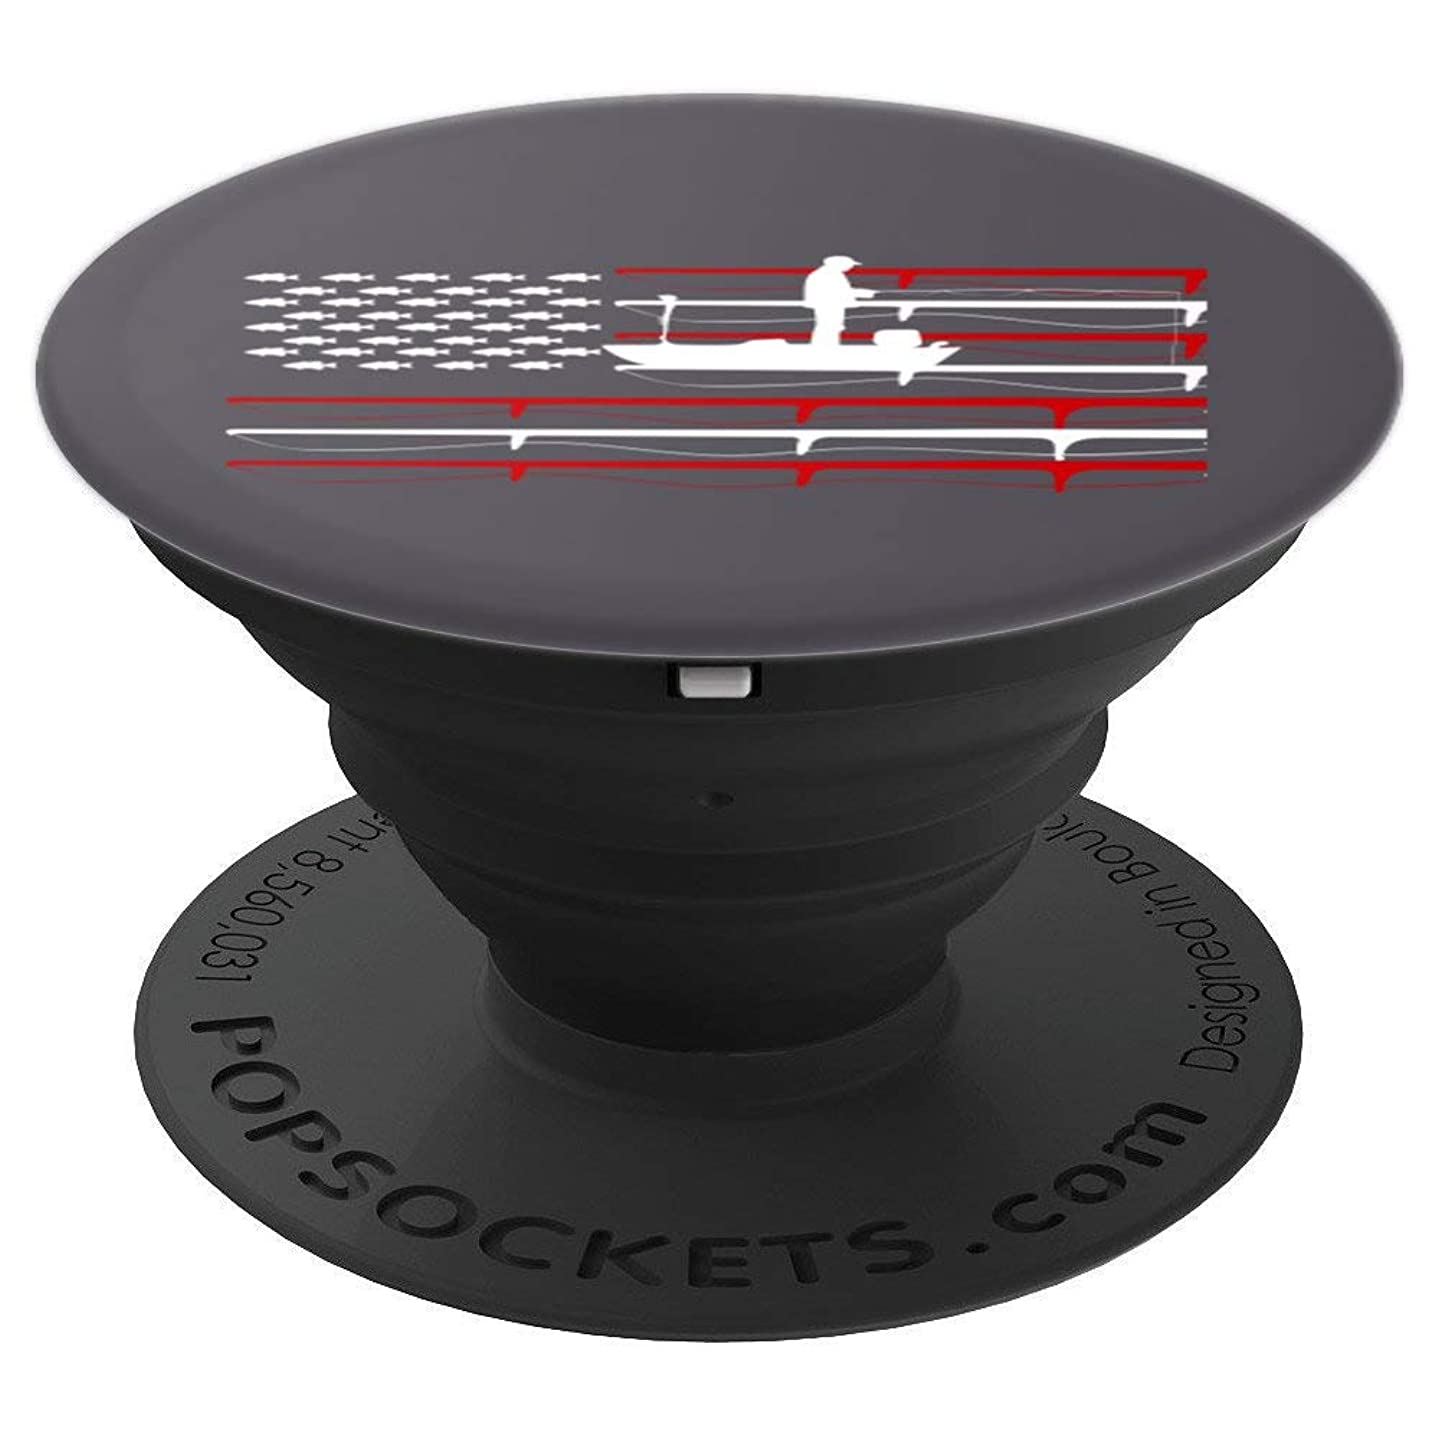 FISHING American Flag Design | USA Fishersman Boat Art - PopSockets Grip and Stand for Phones and Tablets